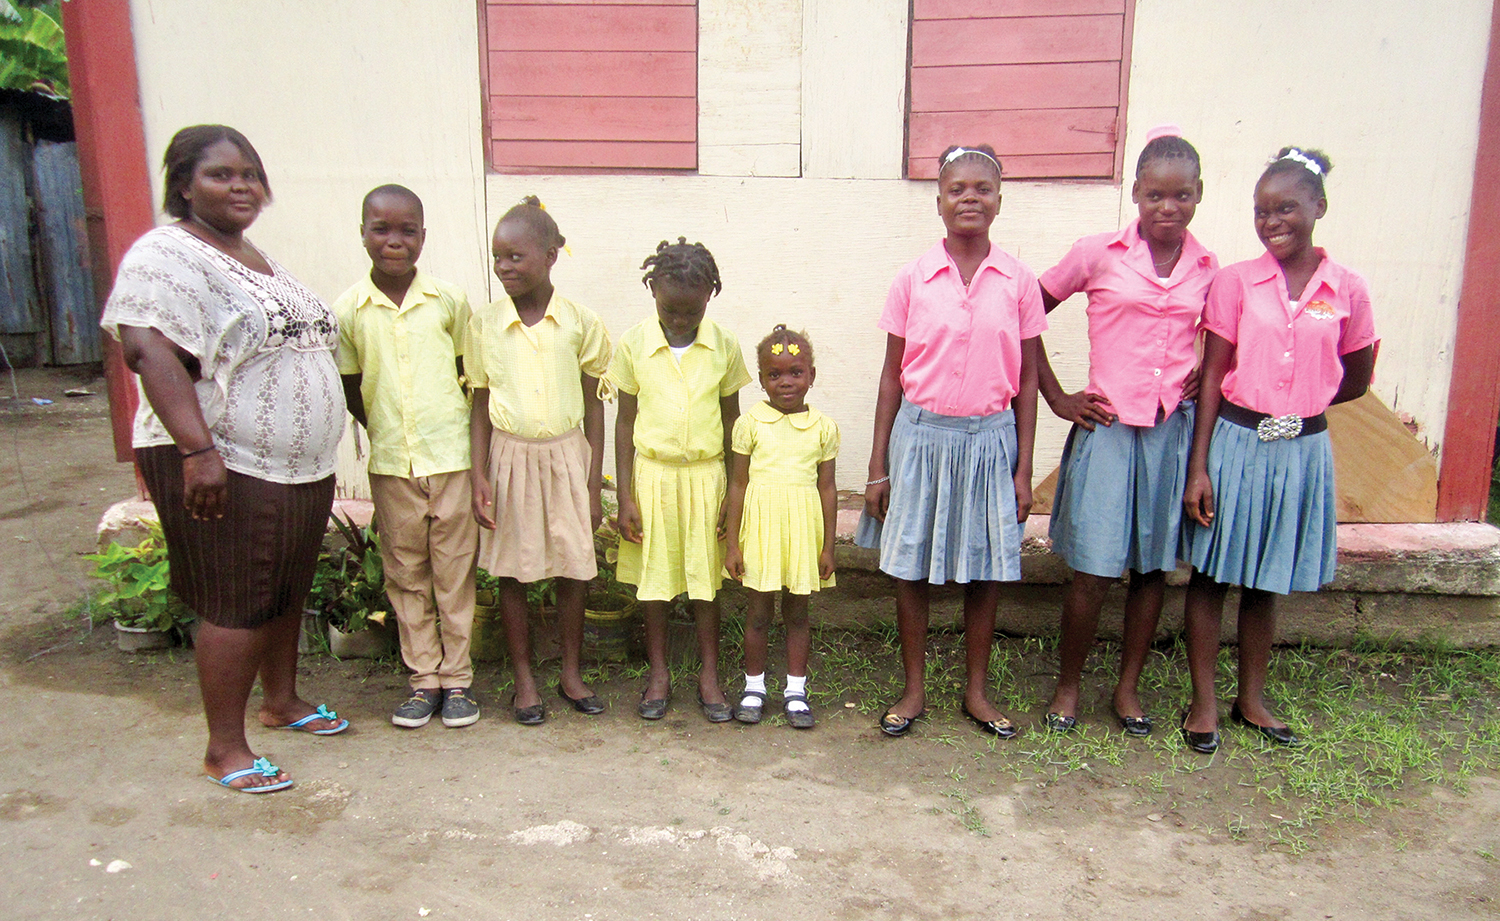 Fils Germane, a graduate from the class of 1992, now has her children attending our schools.